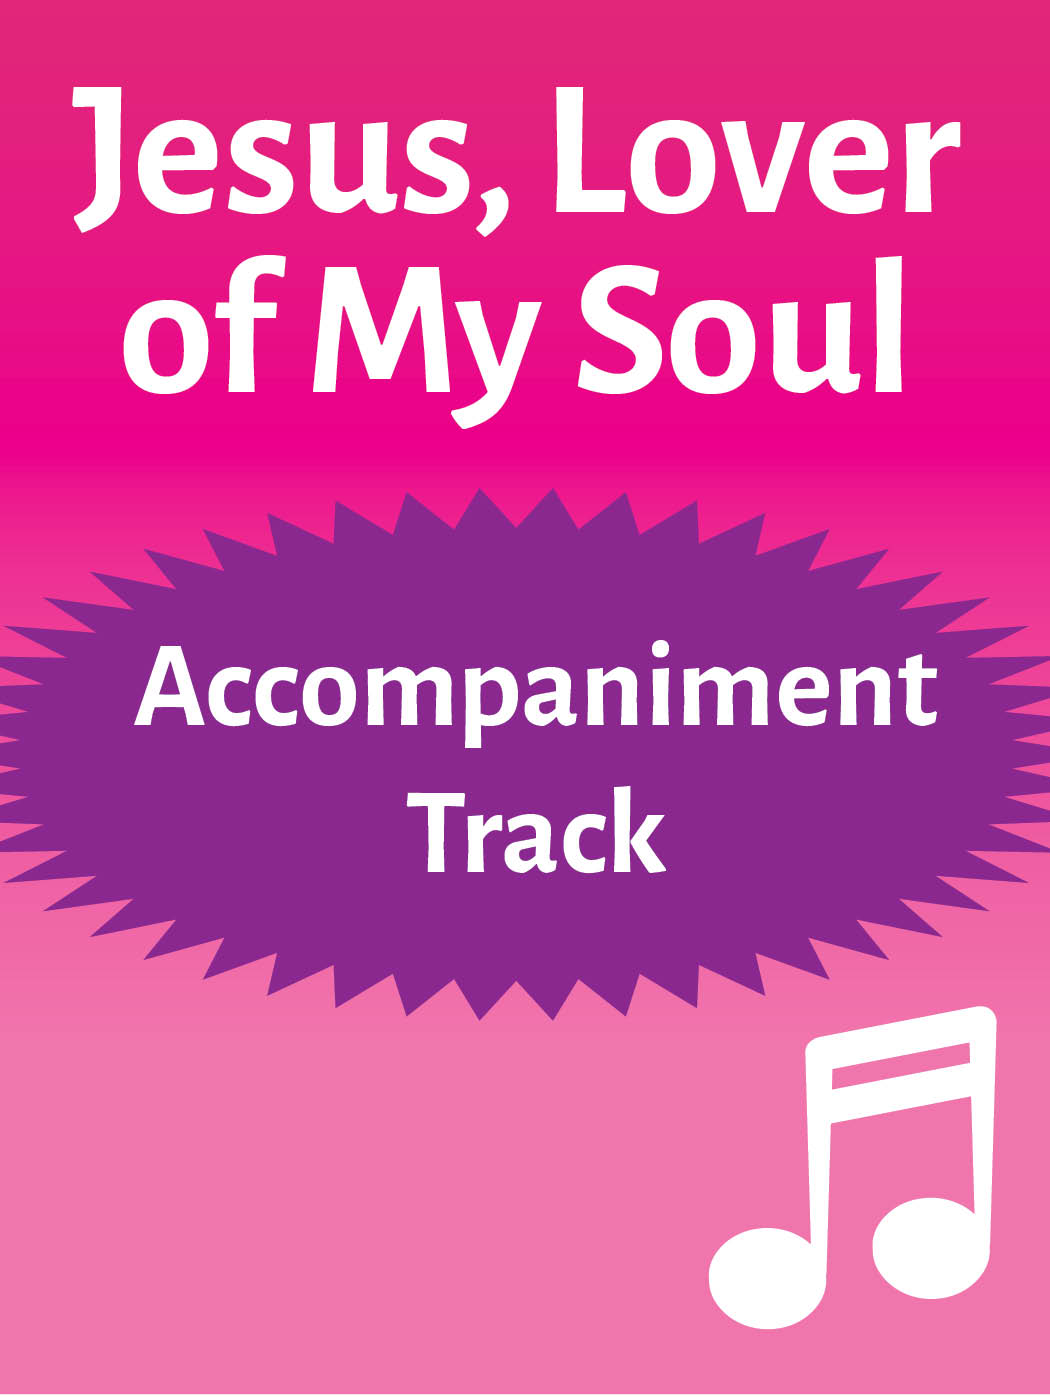 Jesus, Lover of My Soul – accompaniment track (mp3 download)